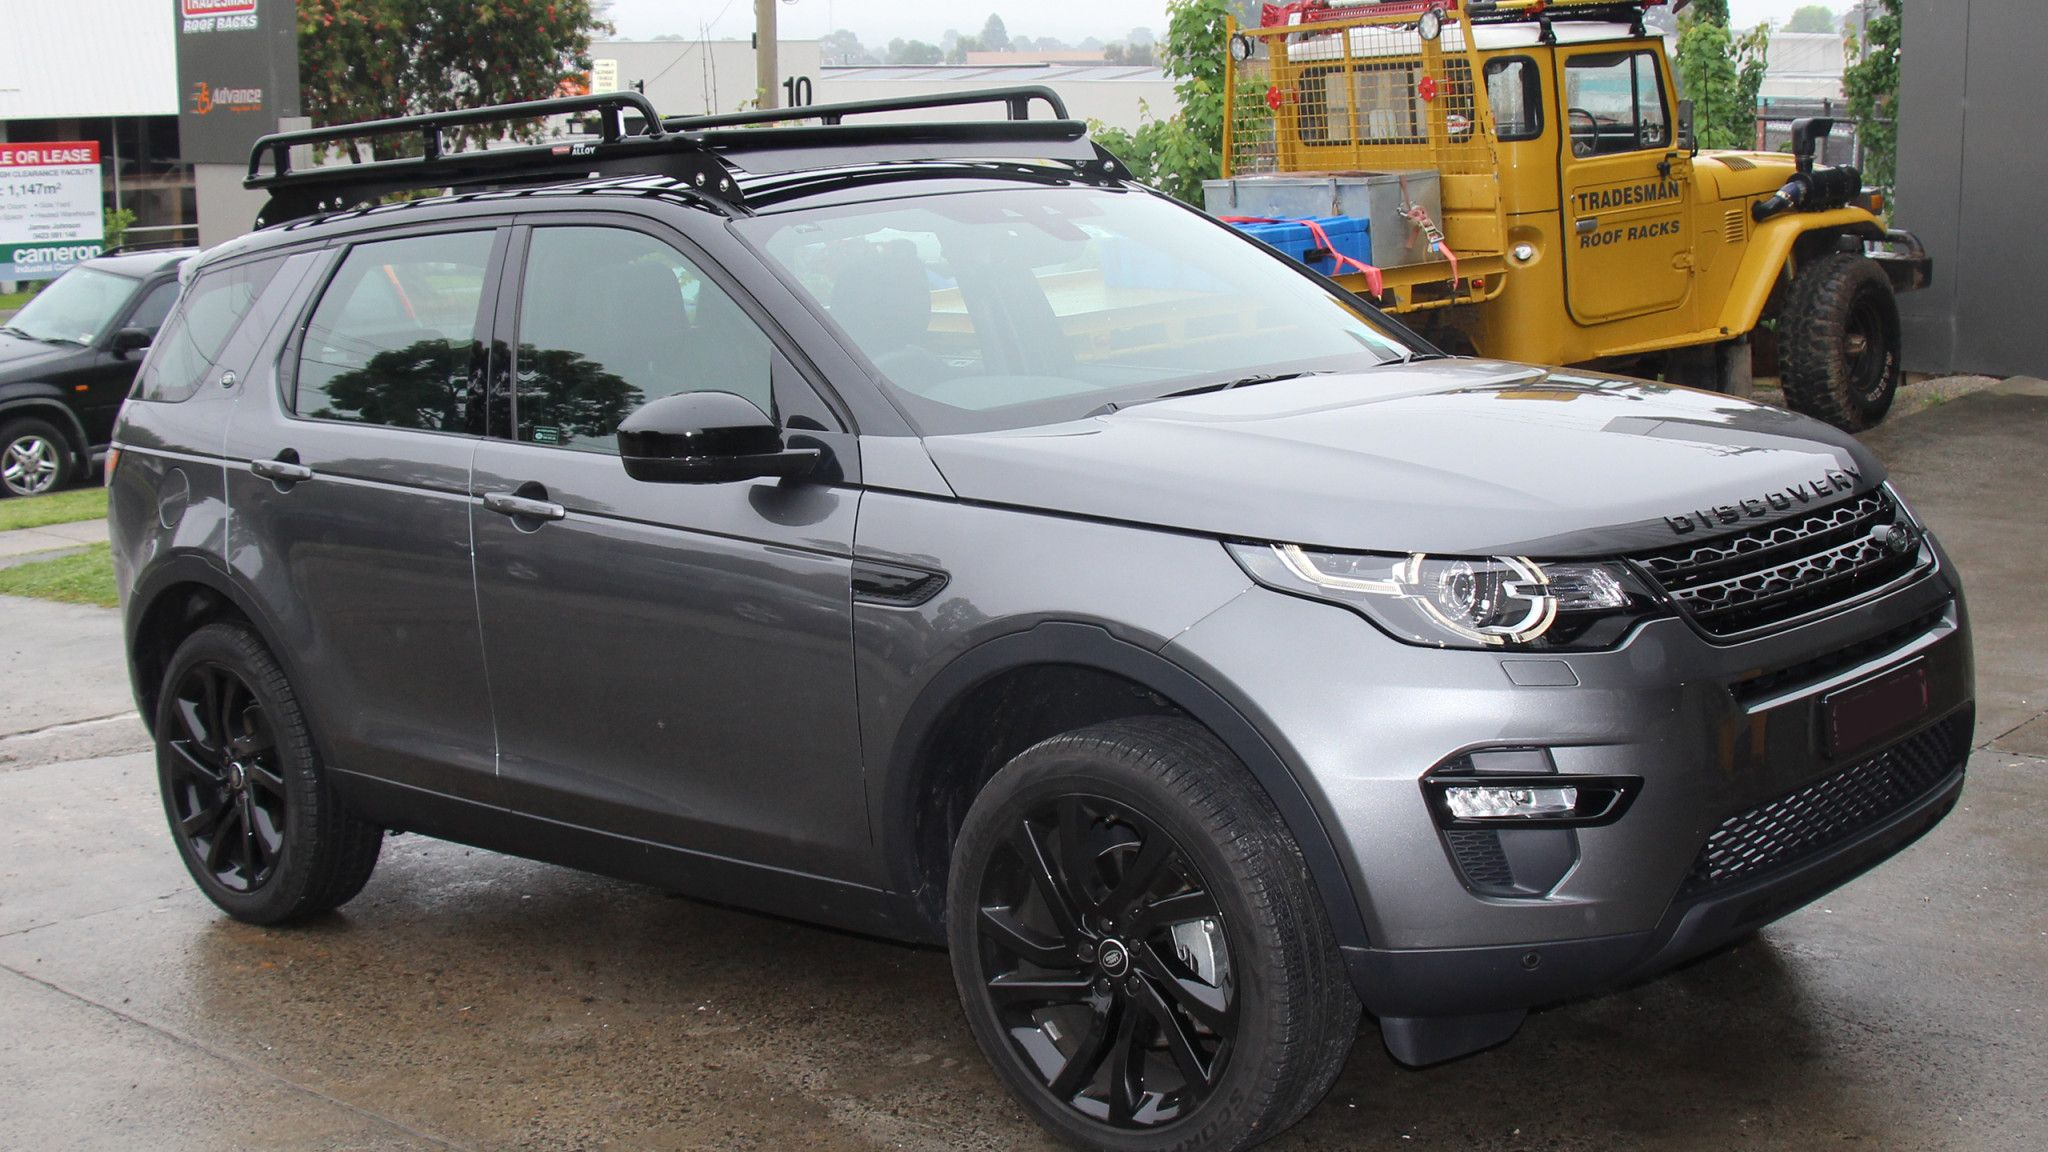 Land Rover Discovery Sport Roof Racks Cars And Bikes